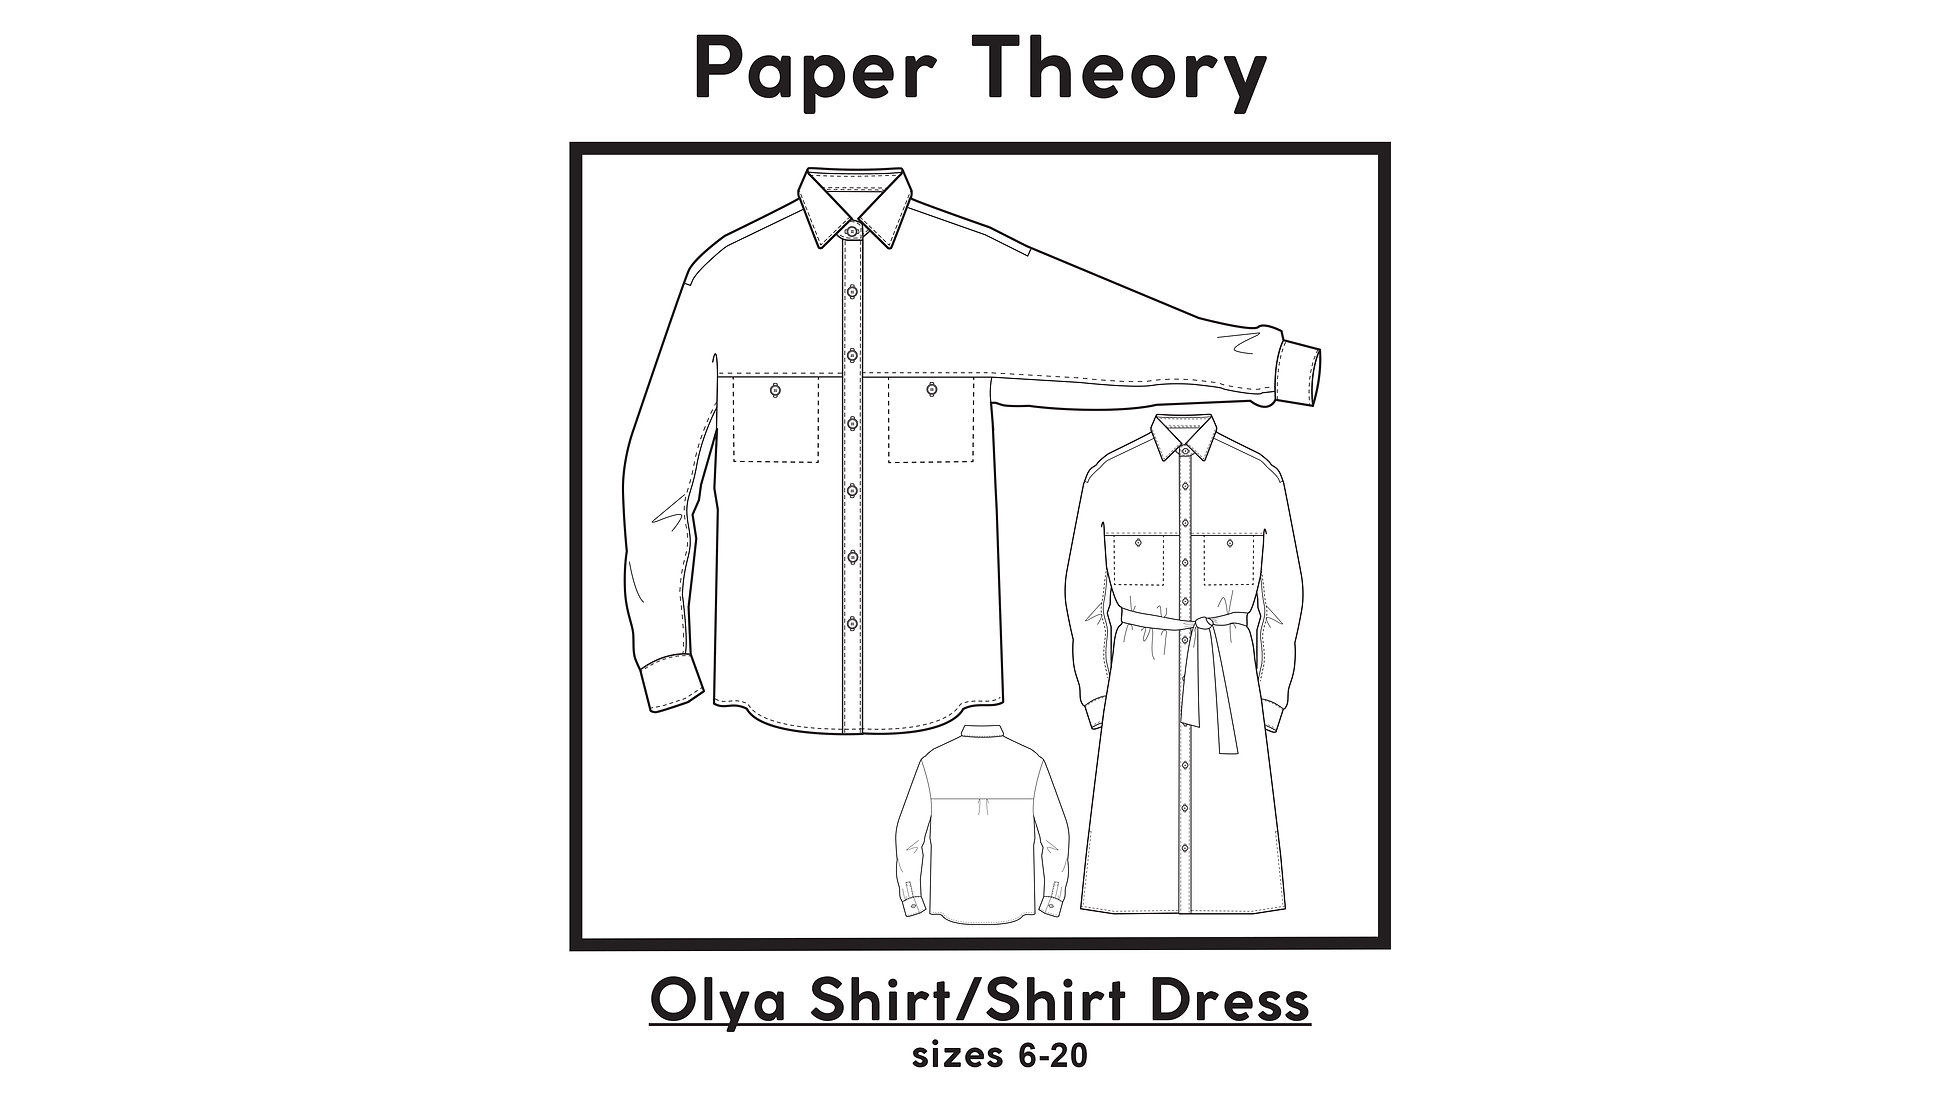 Olya Shirt / Shirt Dress PDF Pattern